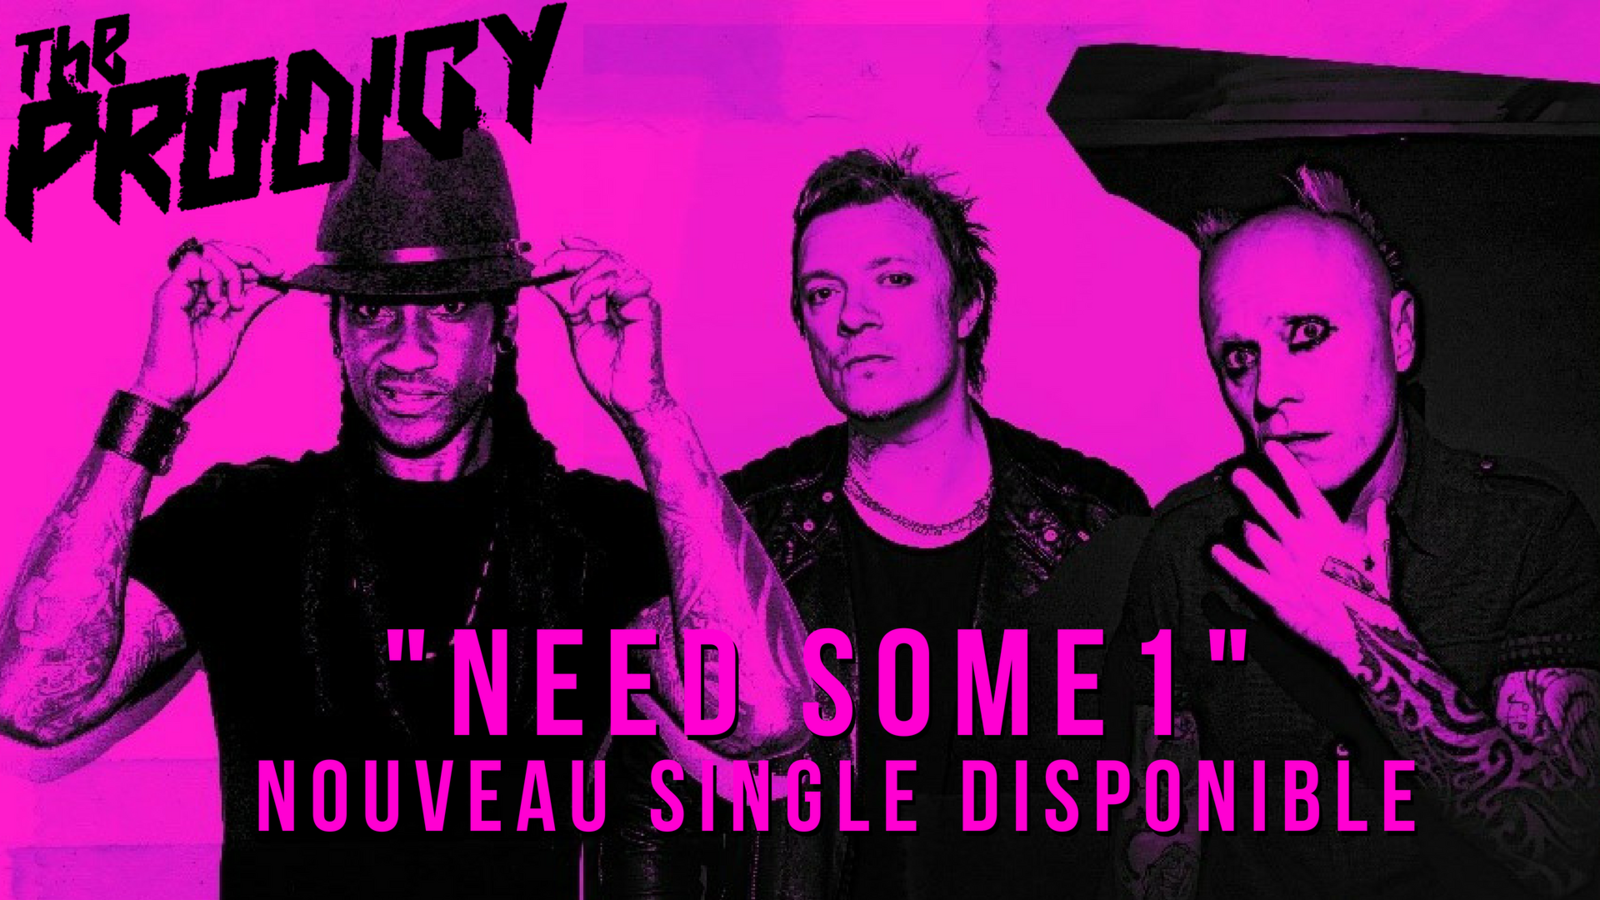 The Prodigy > Need Some1, nouveau single disponible! / ACTUALITE MUSICALE